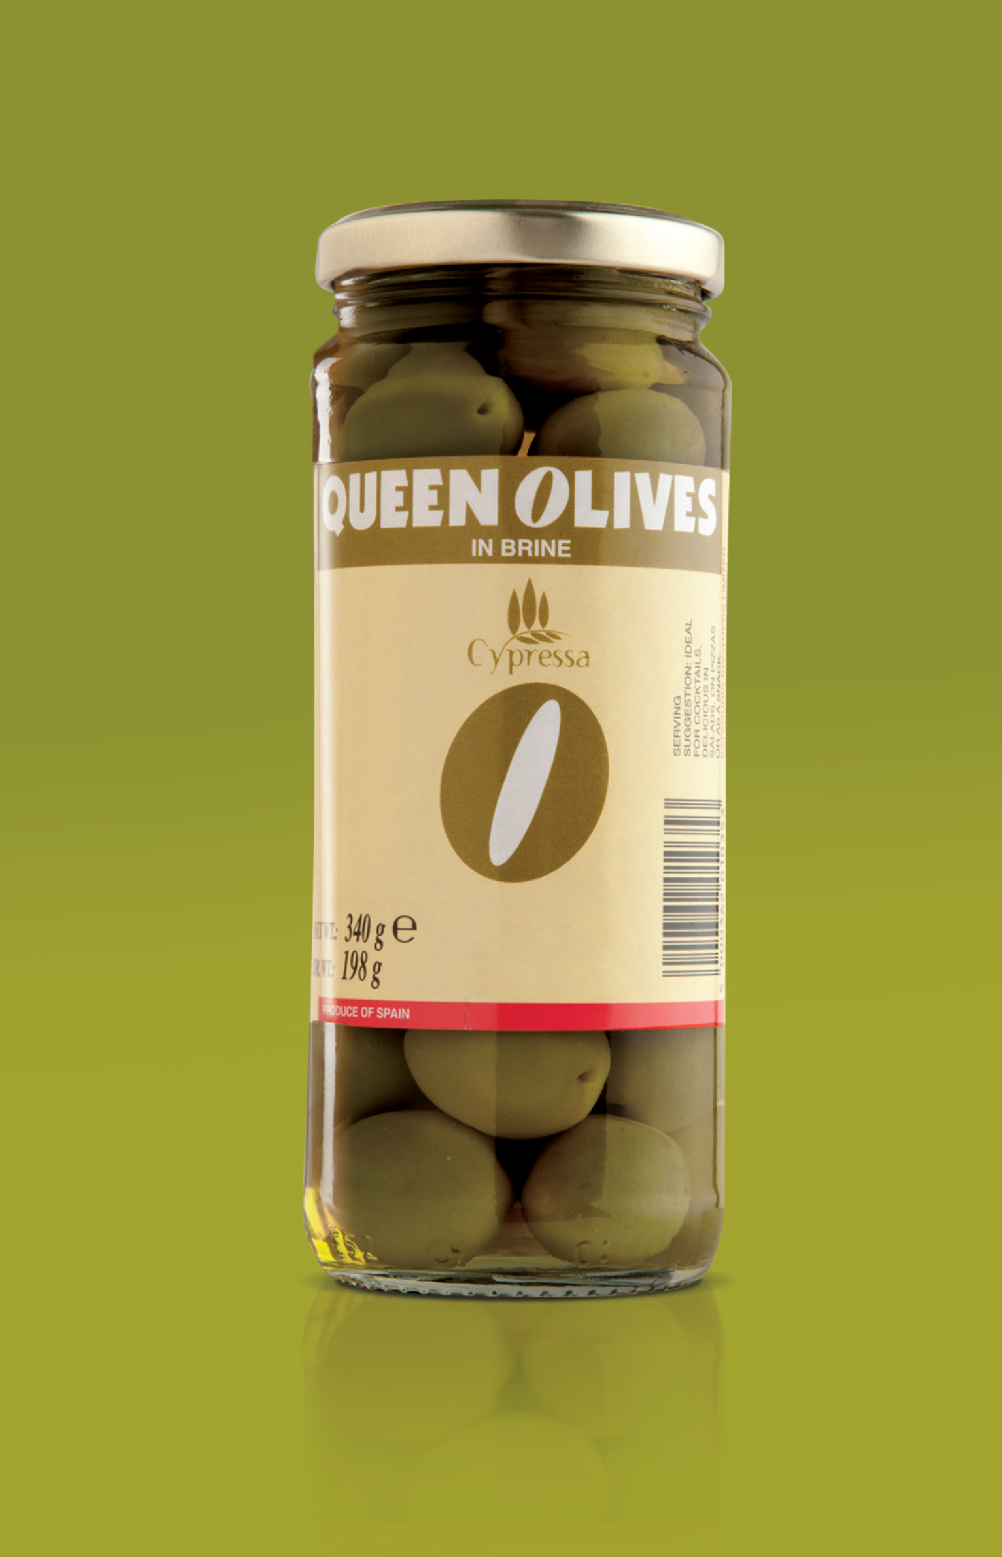 Cypressa Olives, from 1985